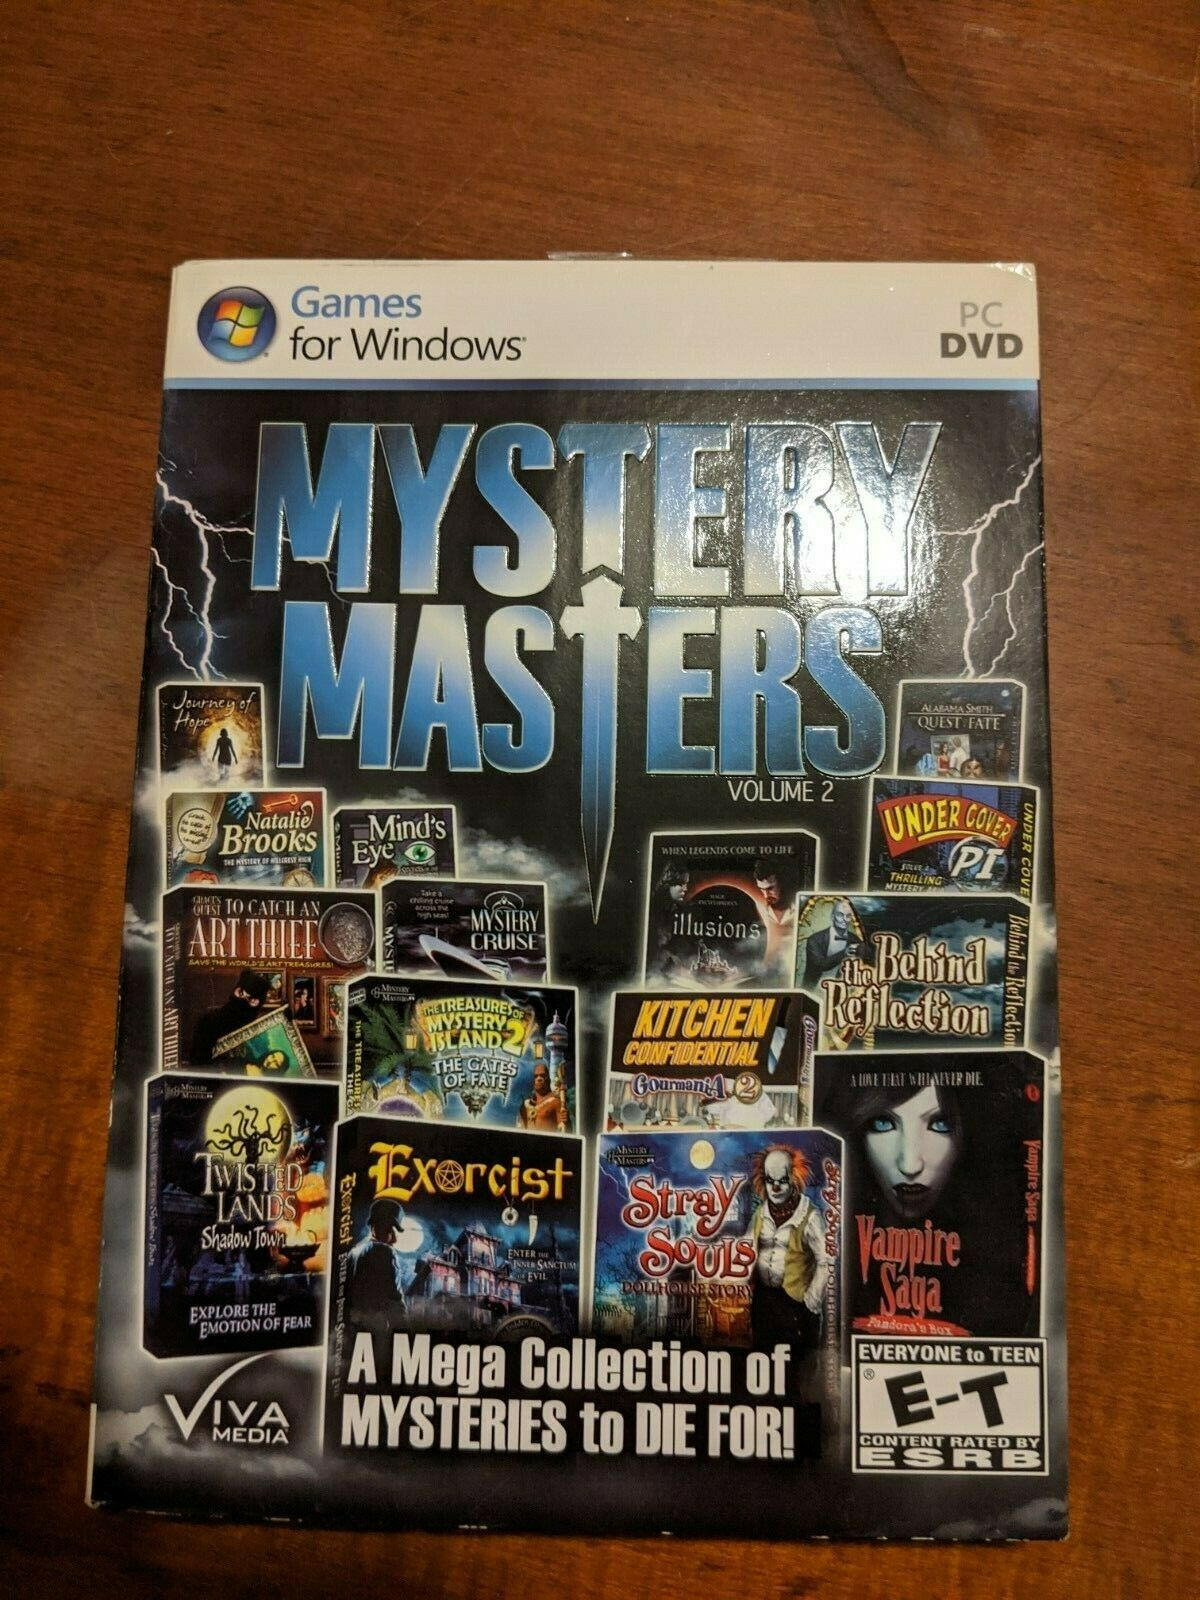 Computer Games - COMPUTER GAMES - MYSTERY MASTERS VOLUME 2 (15 GAMES) -C1